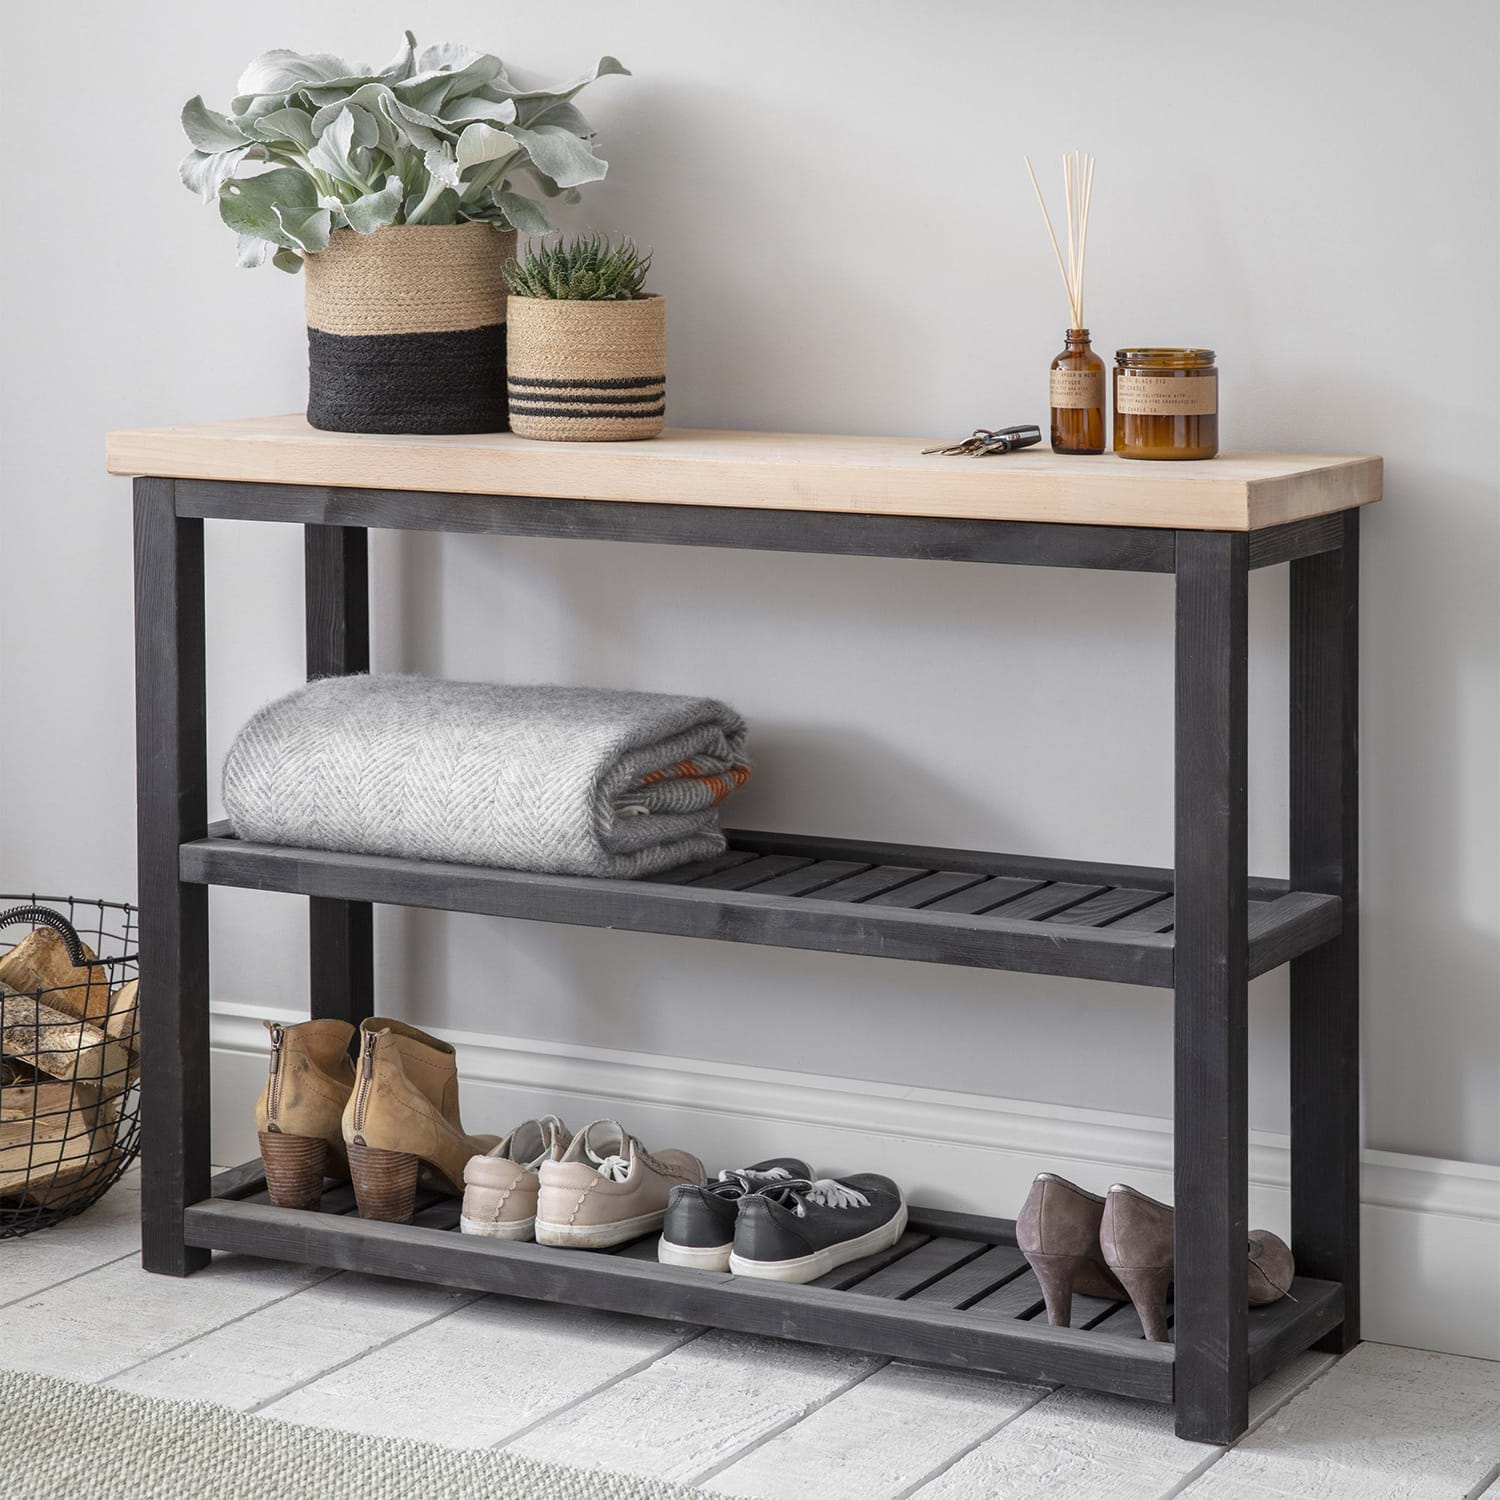 Image of Garden Trading Notgrove Console Table, Spruce